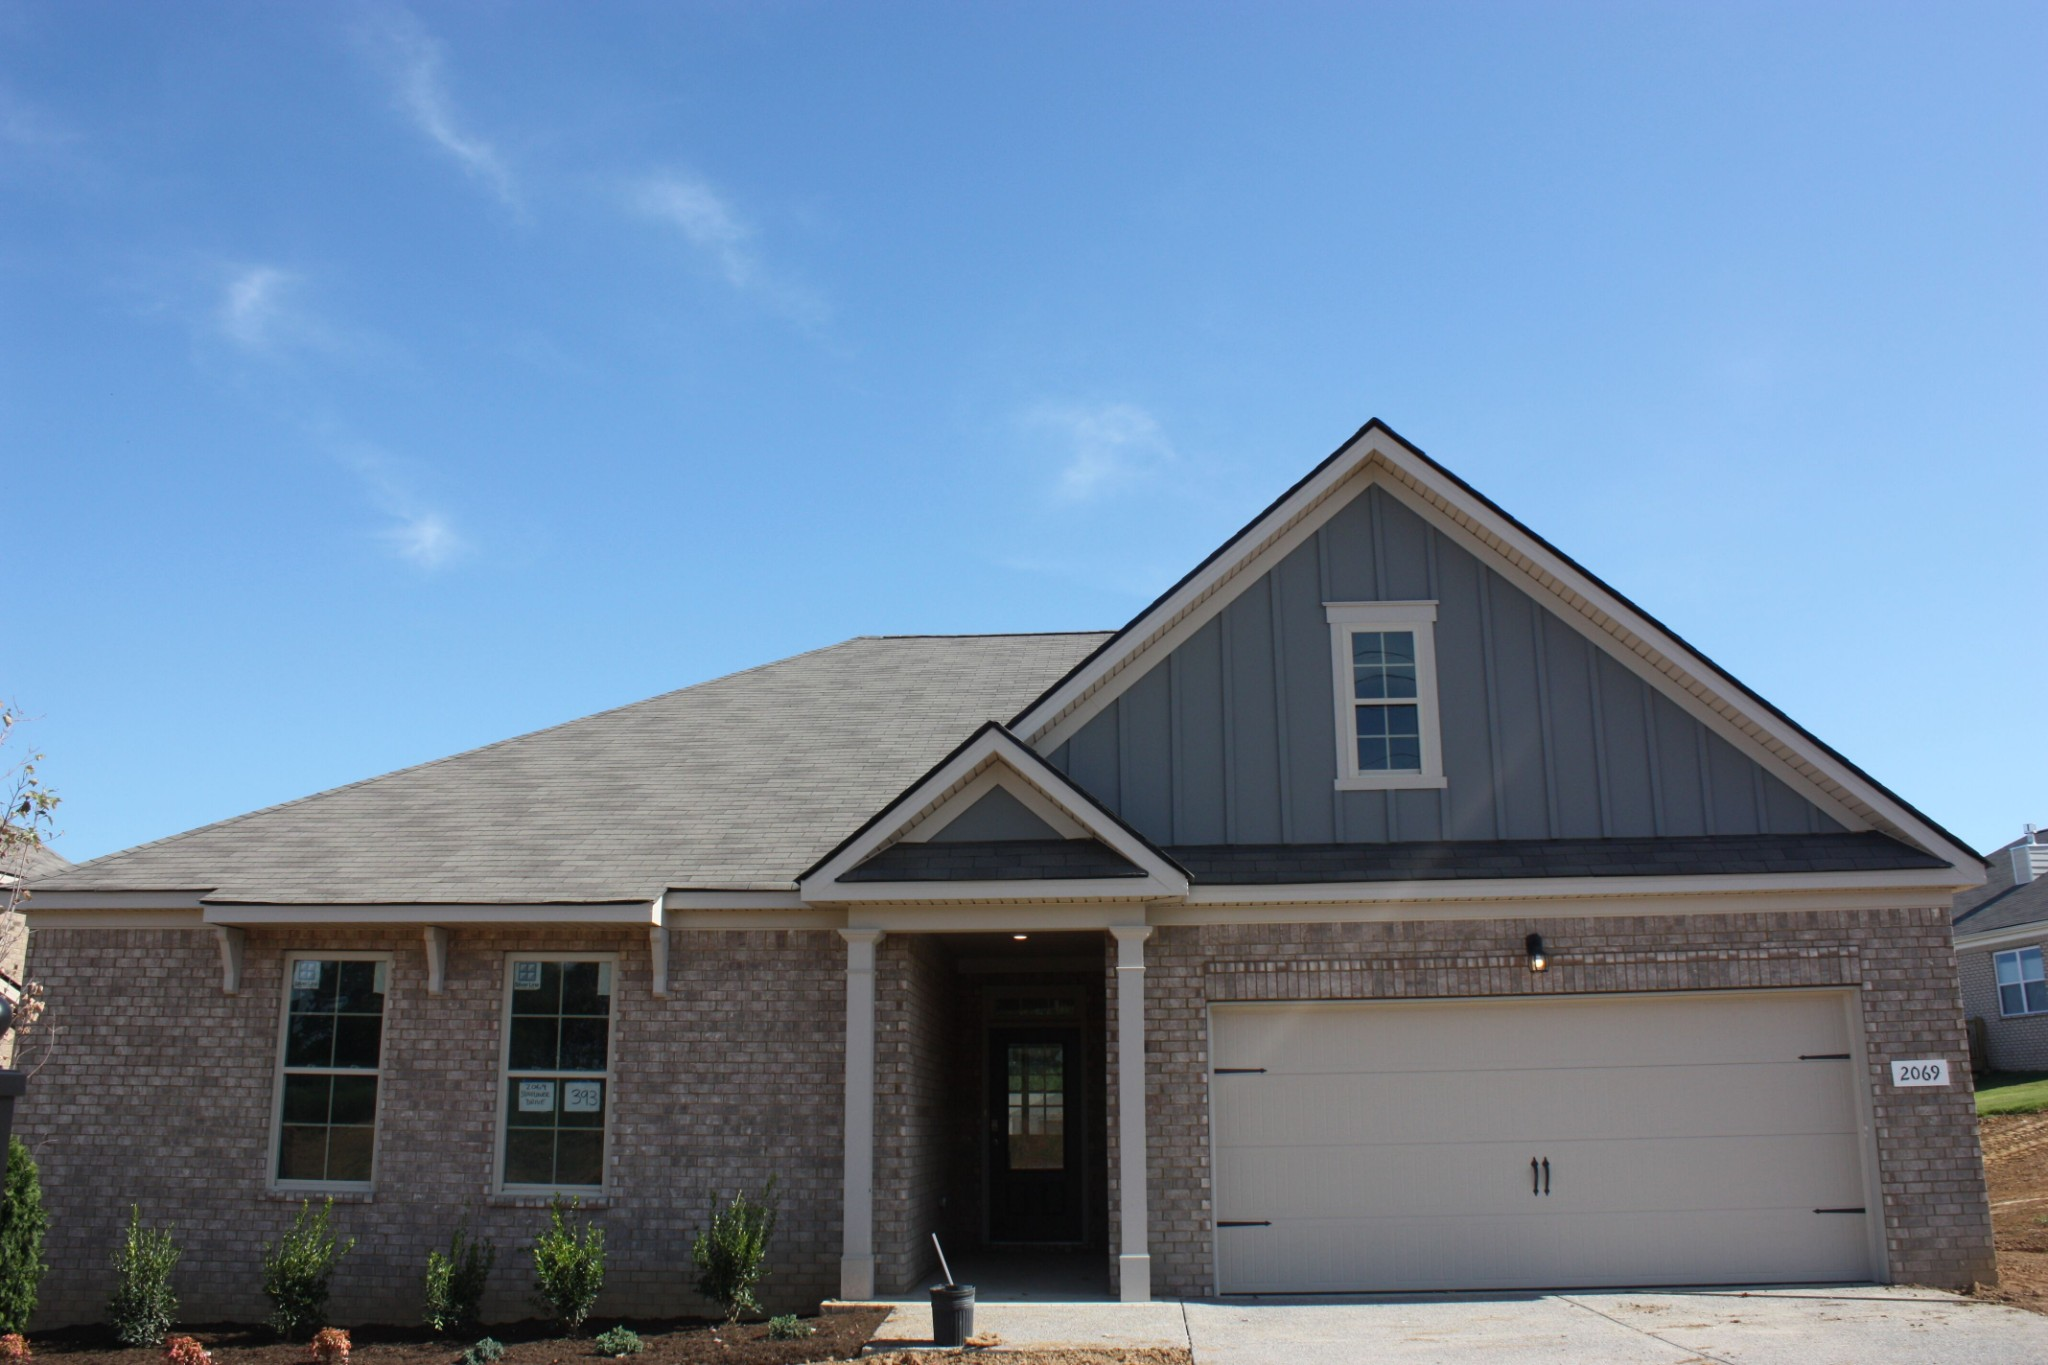 2074 Sunflower Drive, Lot 364, Spring Hill, TN 37174 - Spring Hill, TN real estate listing